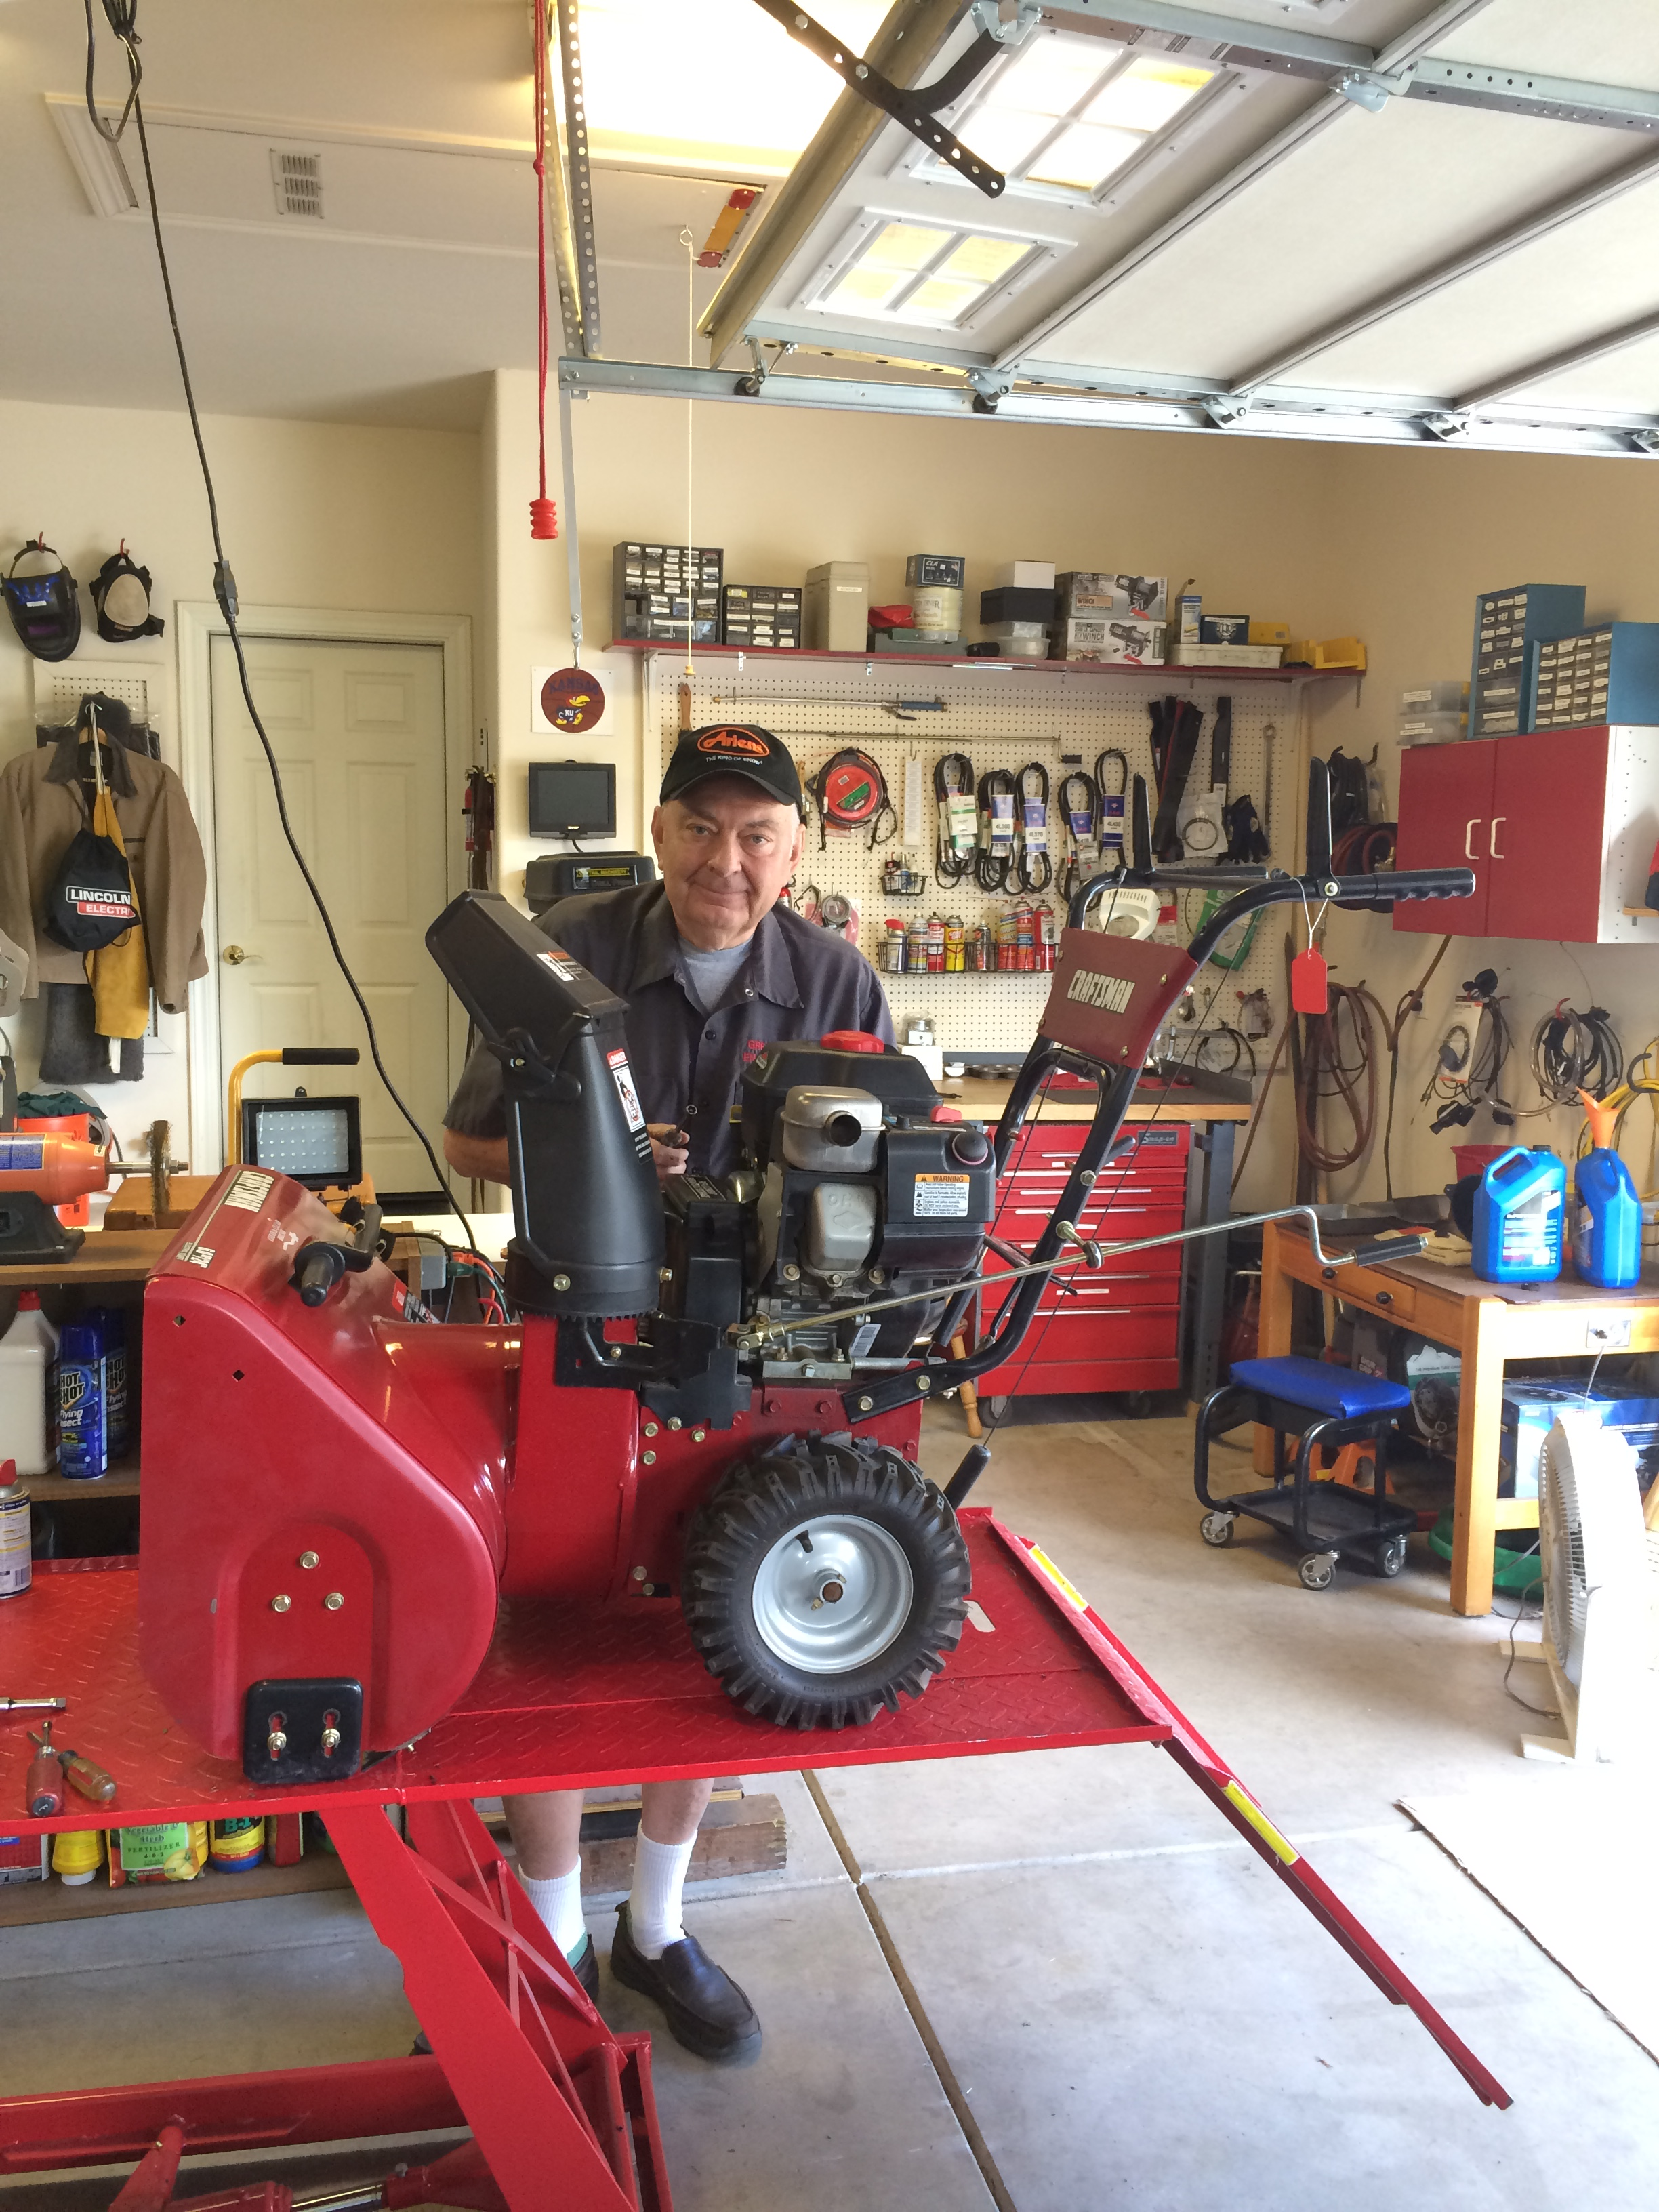 Small Engine Repair : Winter and snow blower safety greg s small engines reno